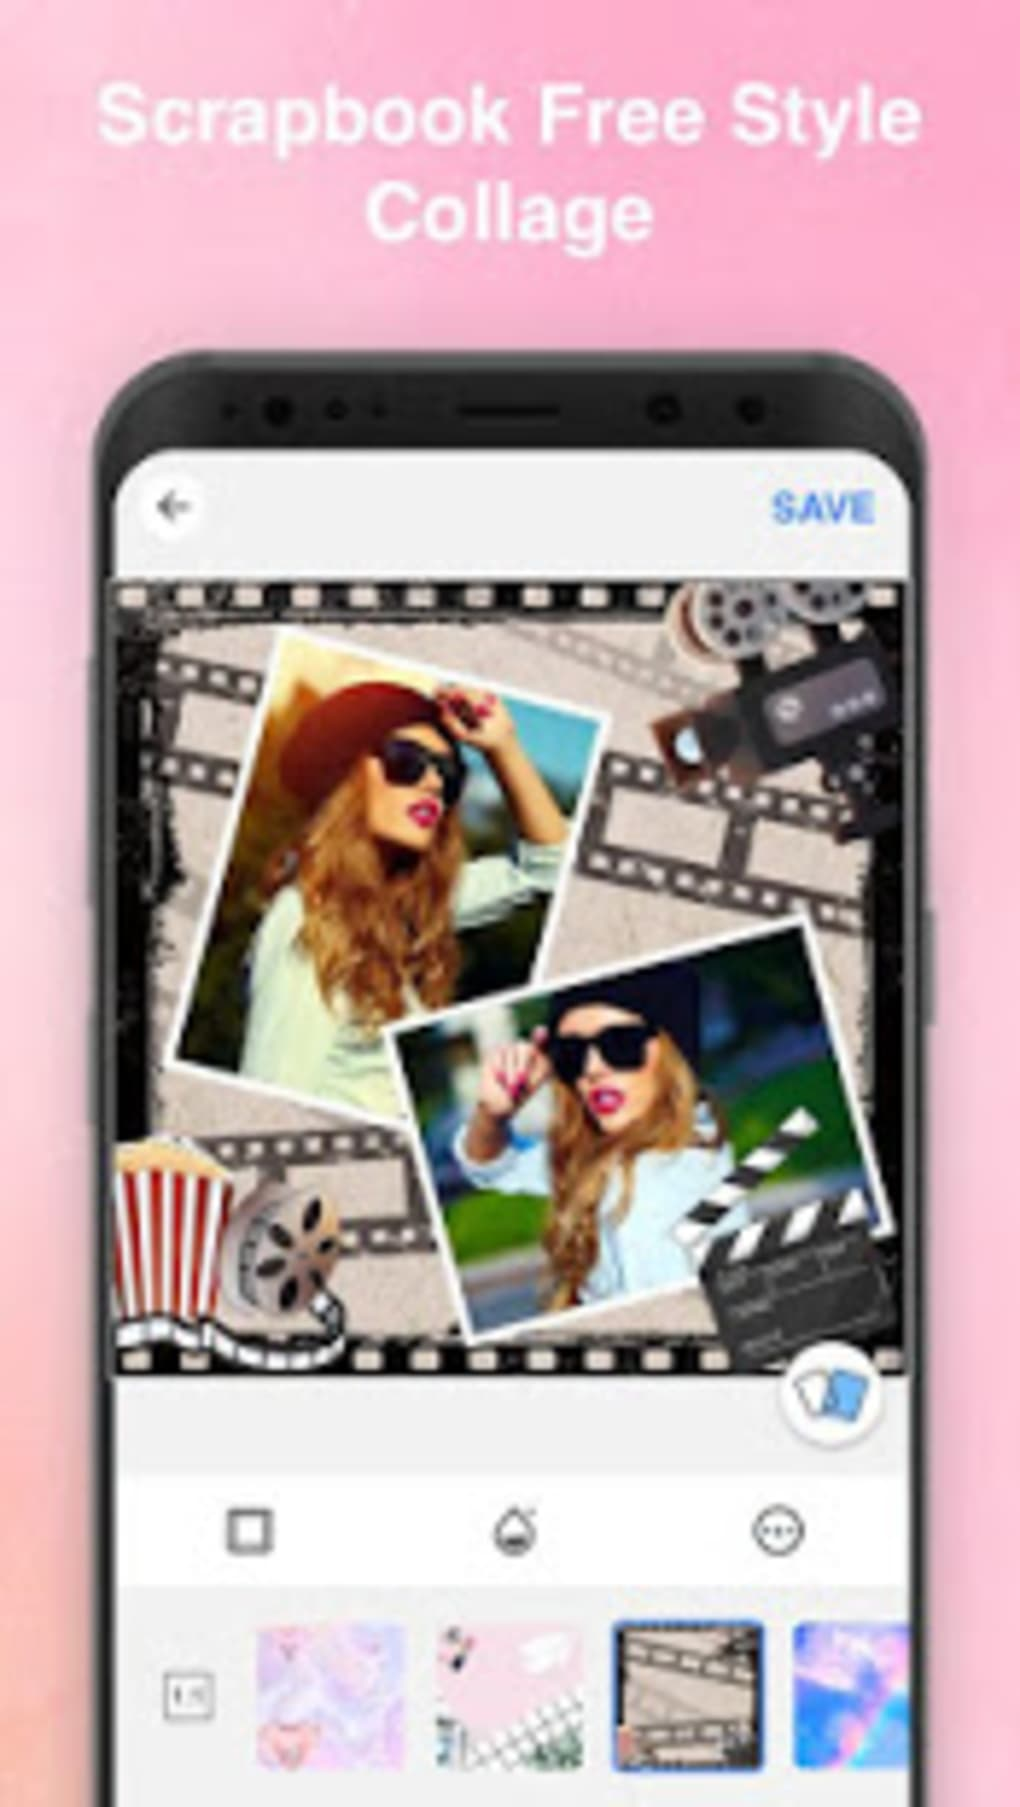 Collage Maker Photo Collage- Grid Filter Effect for Android - Download